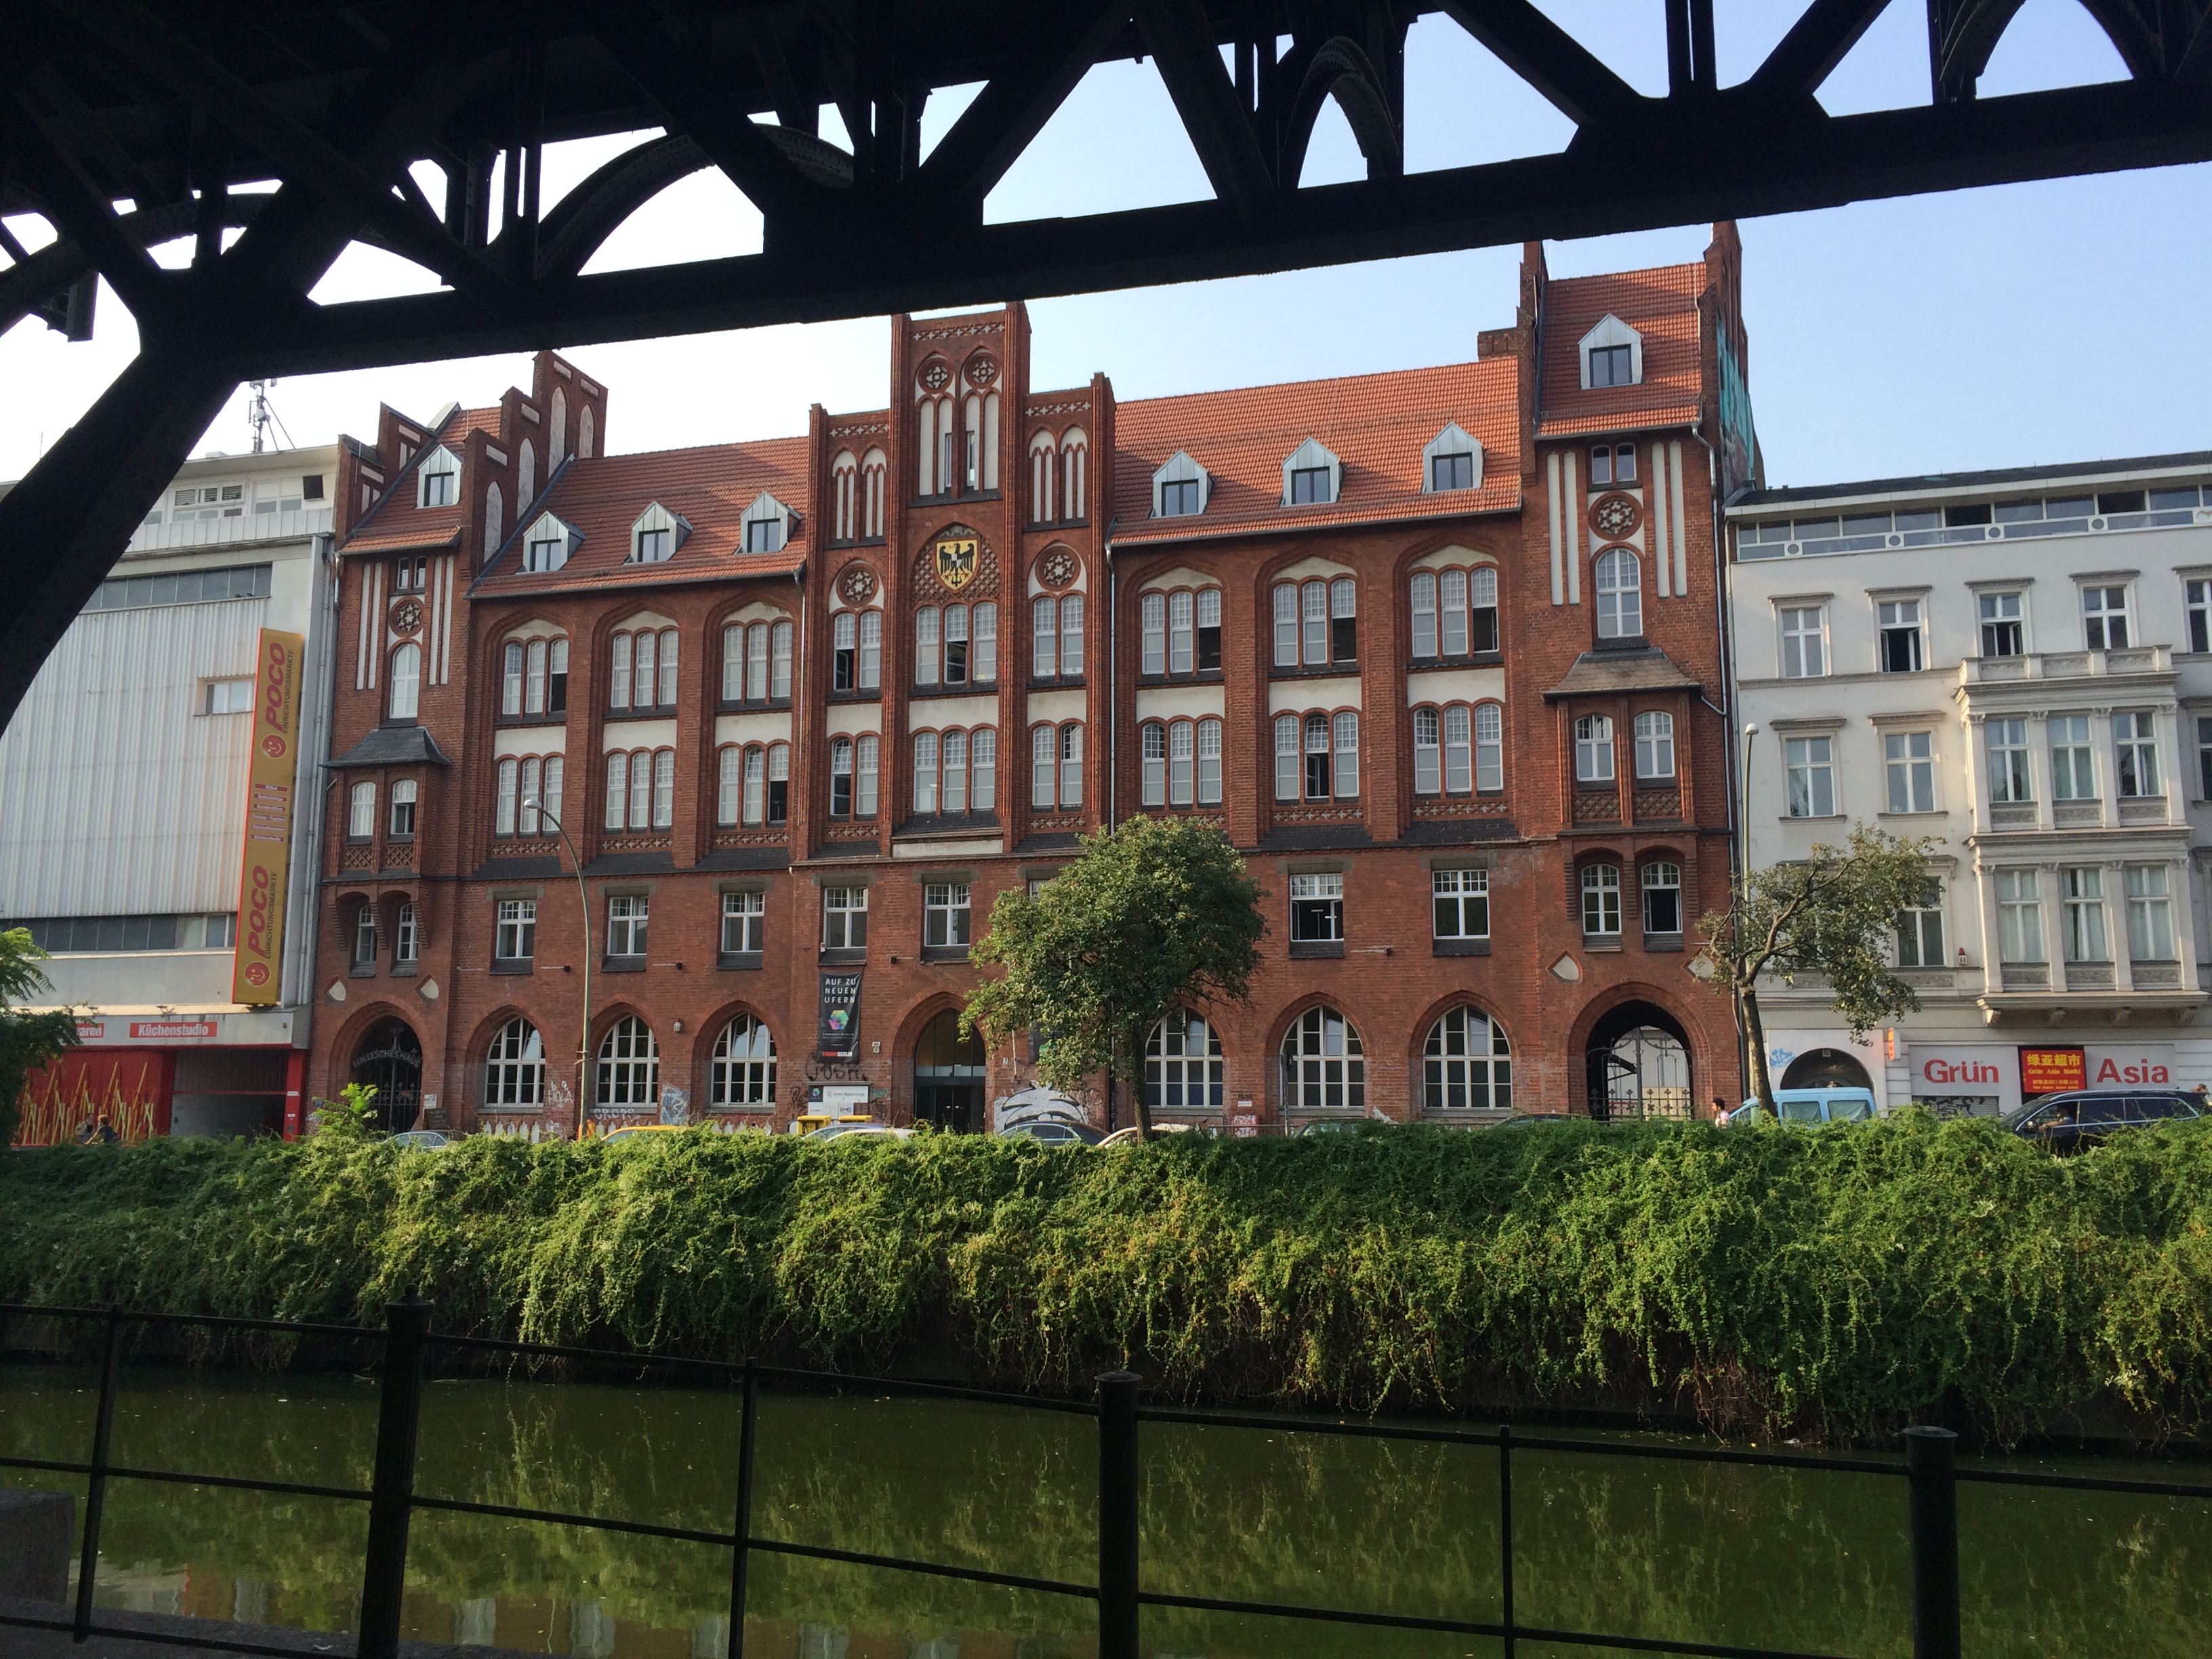 The view from one of the U-Bahn stations near where I was staying